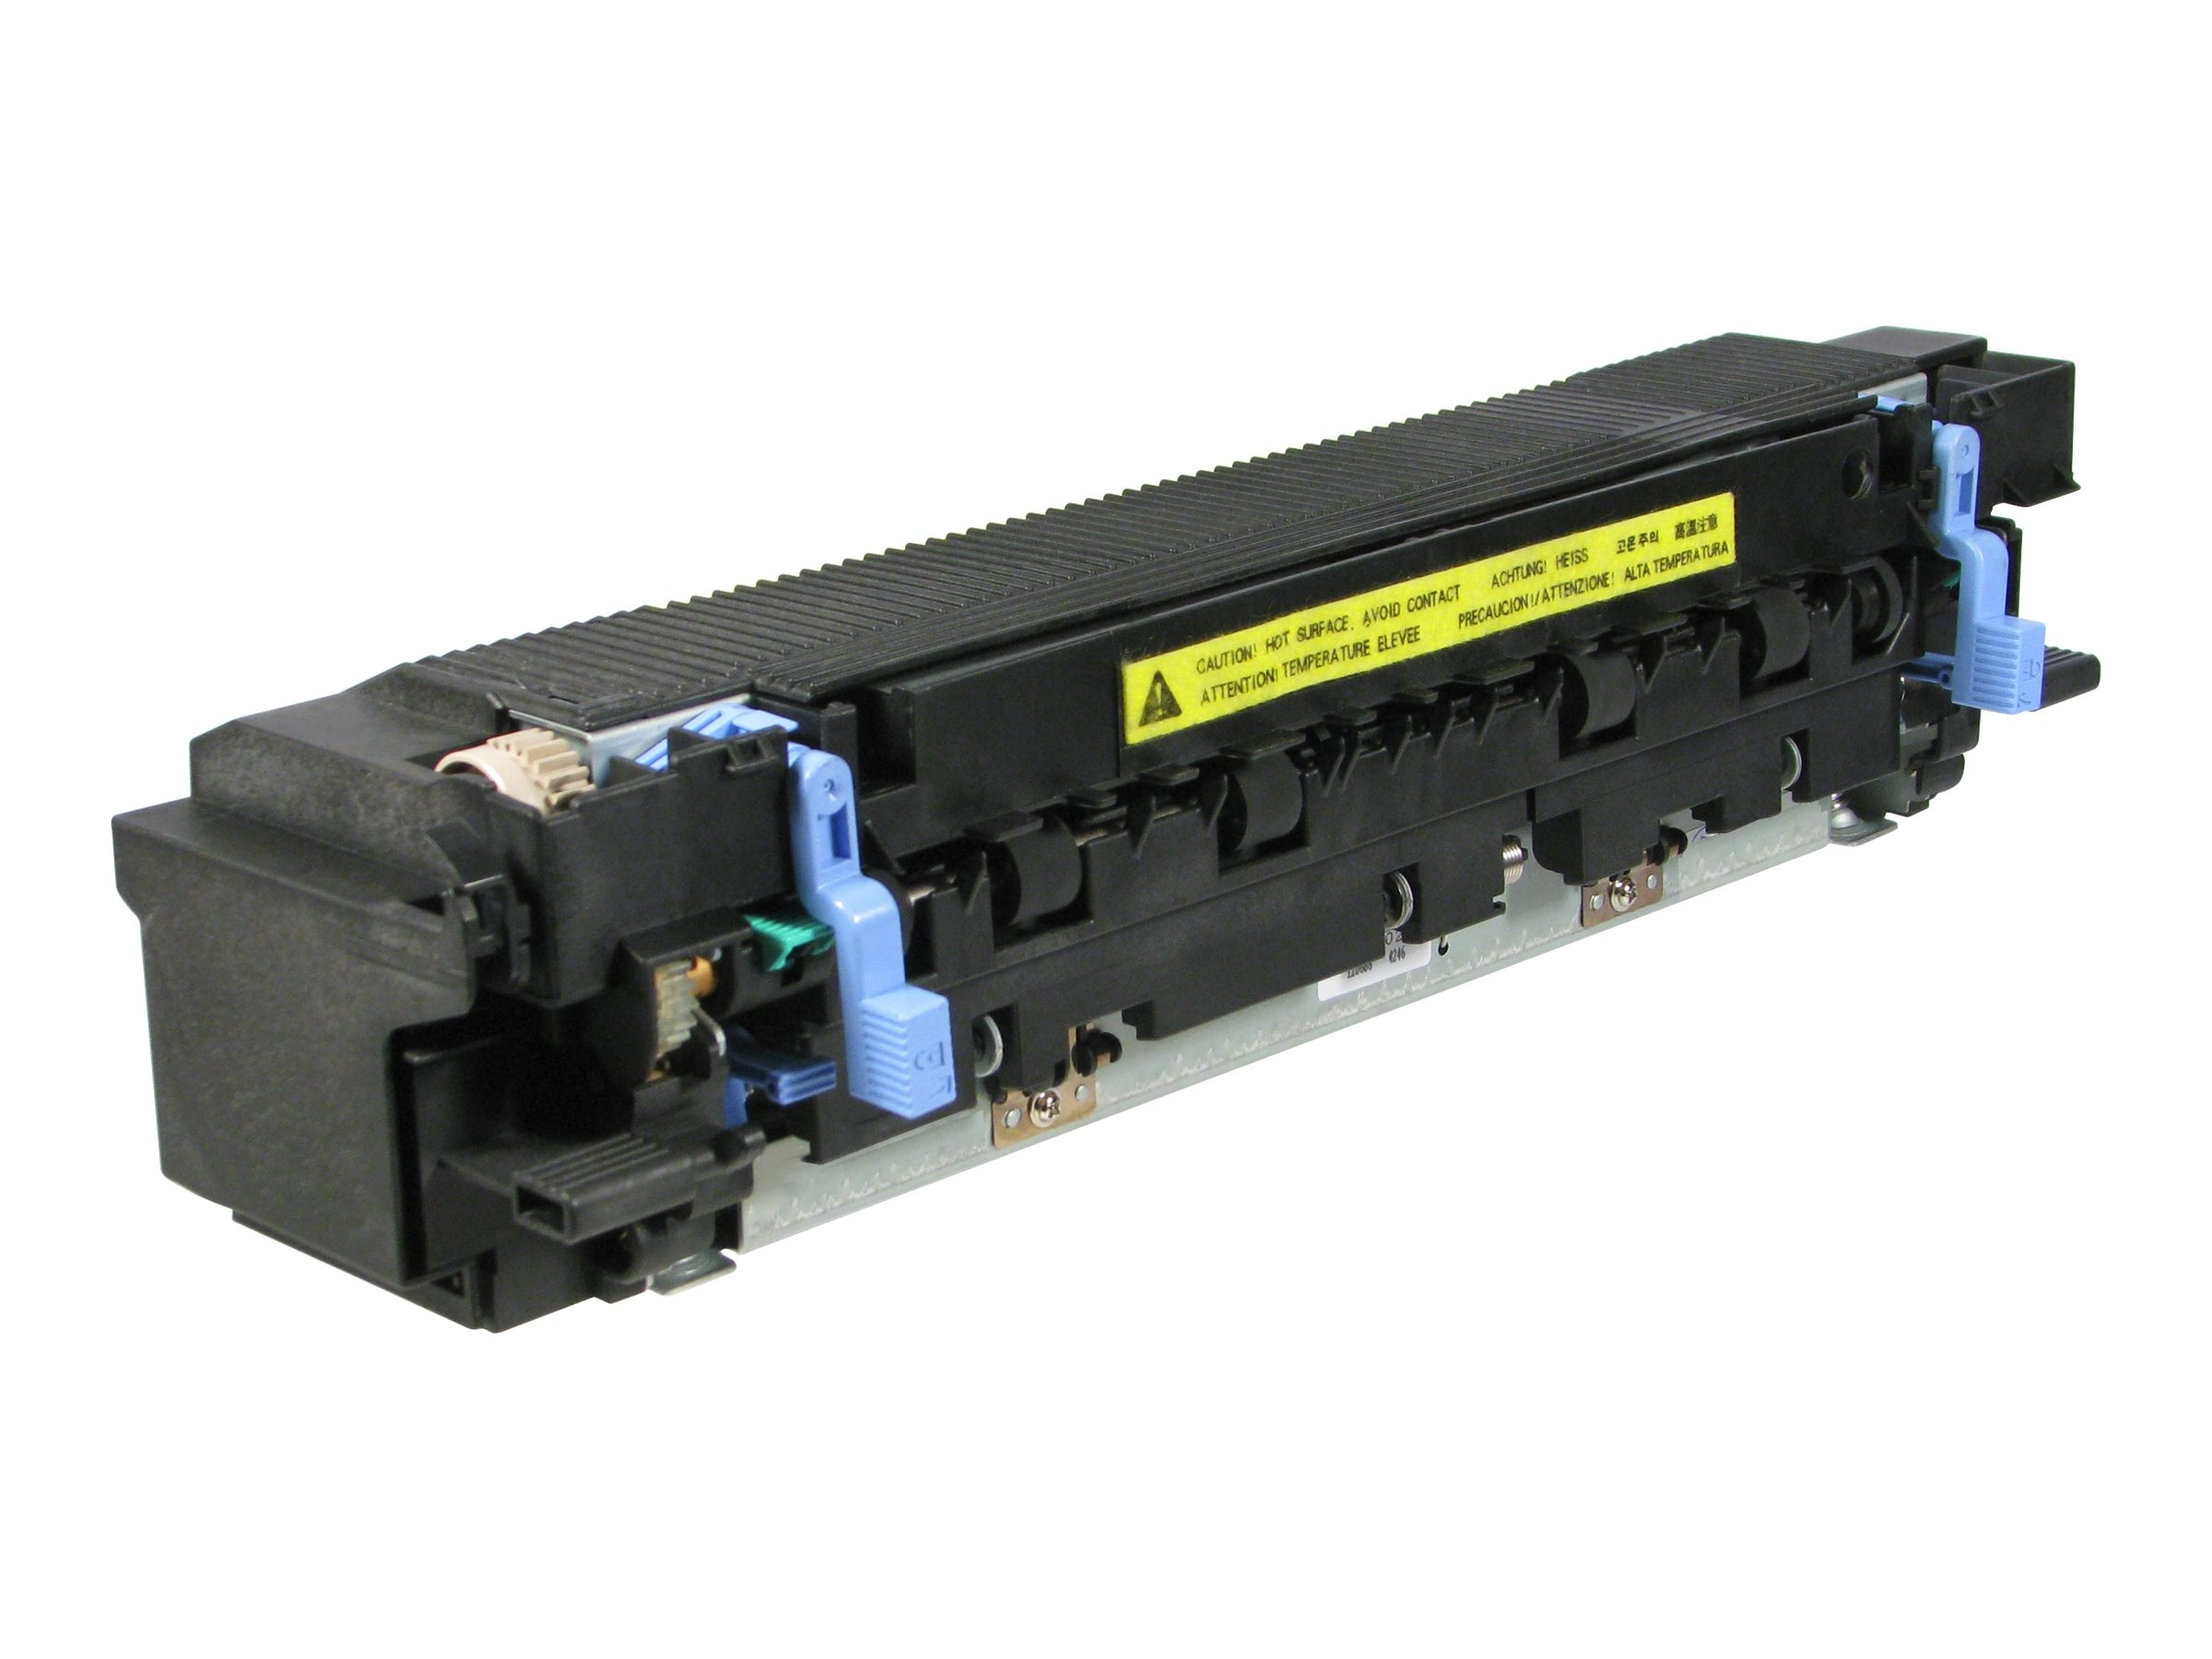 V7 Maintenance Kit for HP LaserJet 8100 Series, MK781000N, 11864955, Printer Accessories